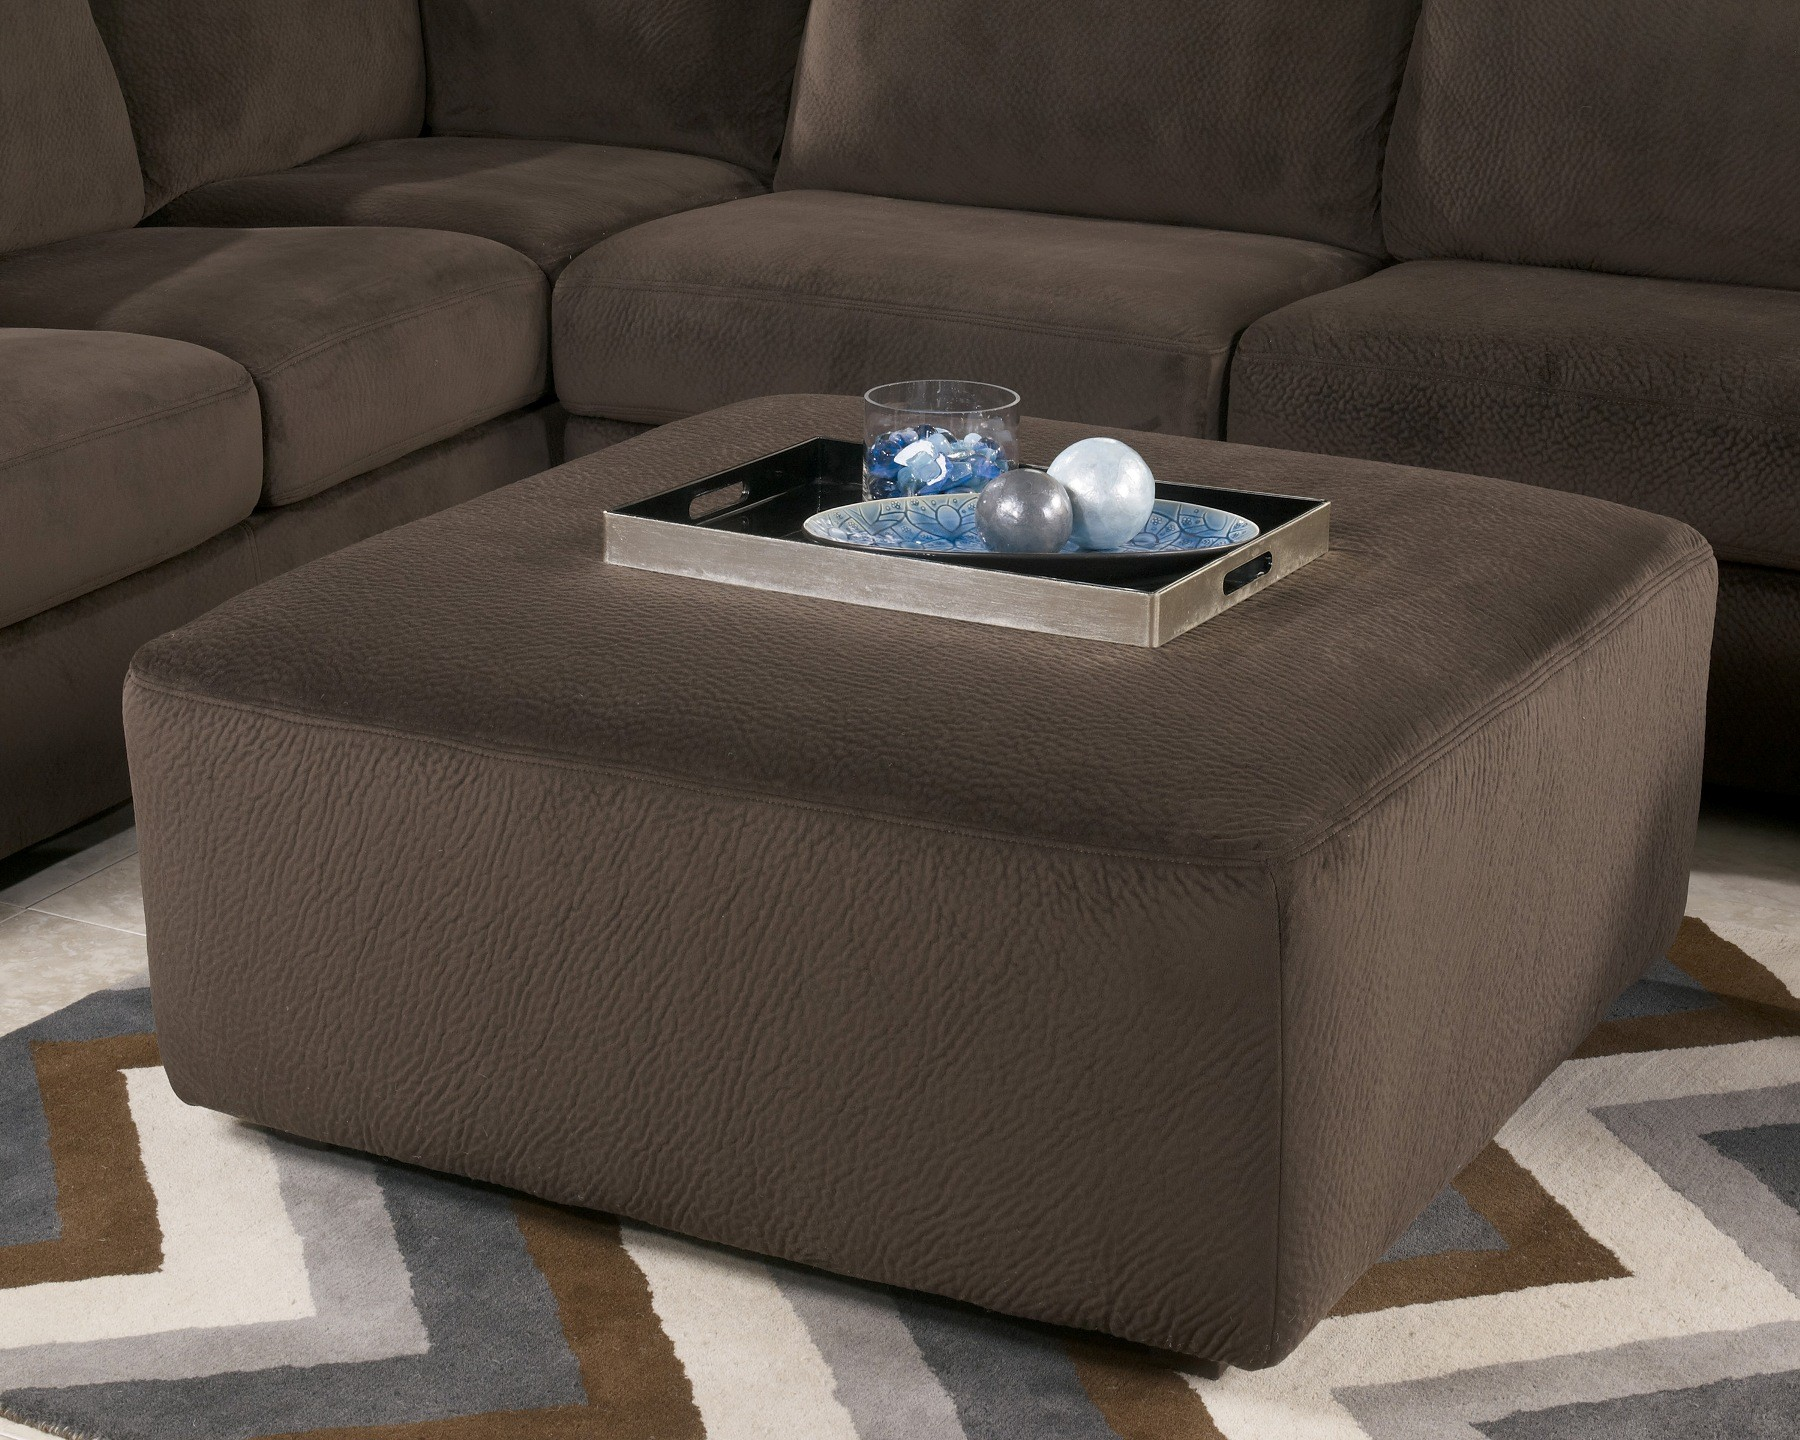 Jessa Place Collection Chocolate Sectional Sofa